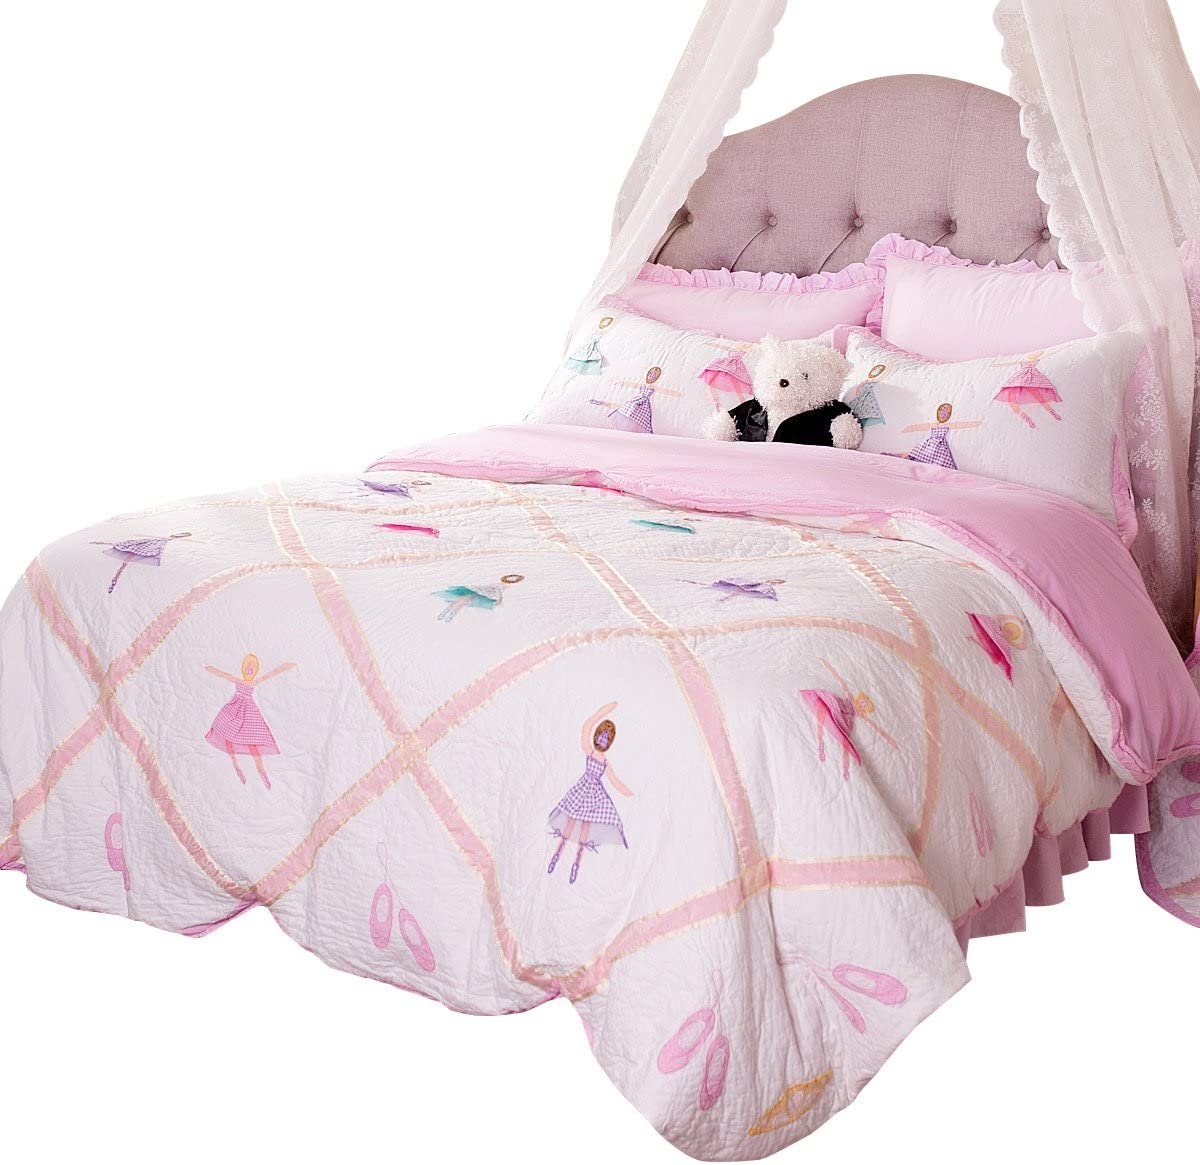 Brandream Pink Ballet Kids Comforter Set Cute Girls Bed Quilt Set Full Queen Size Luxury Handmade Quilts